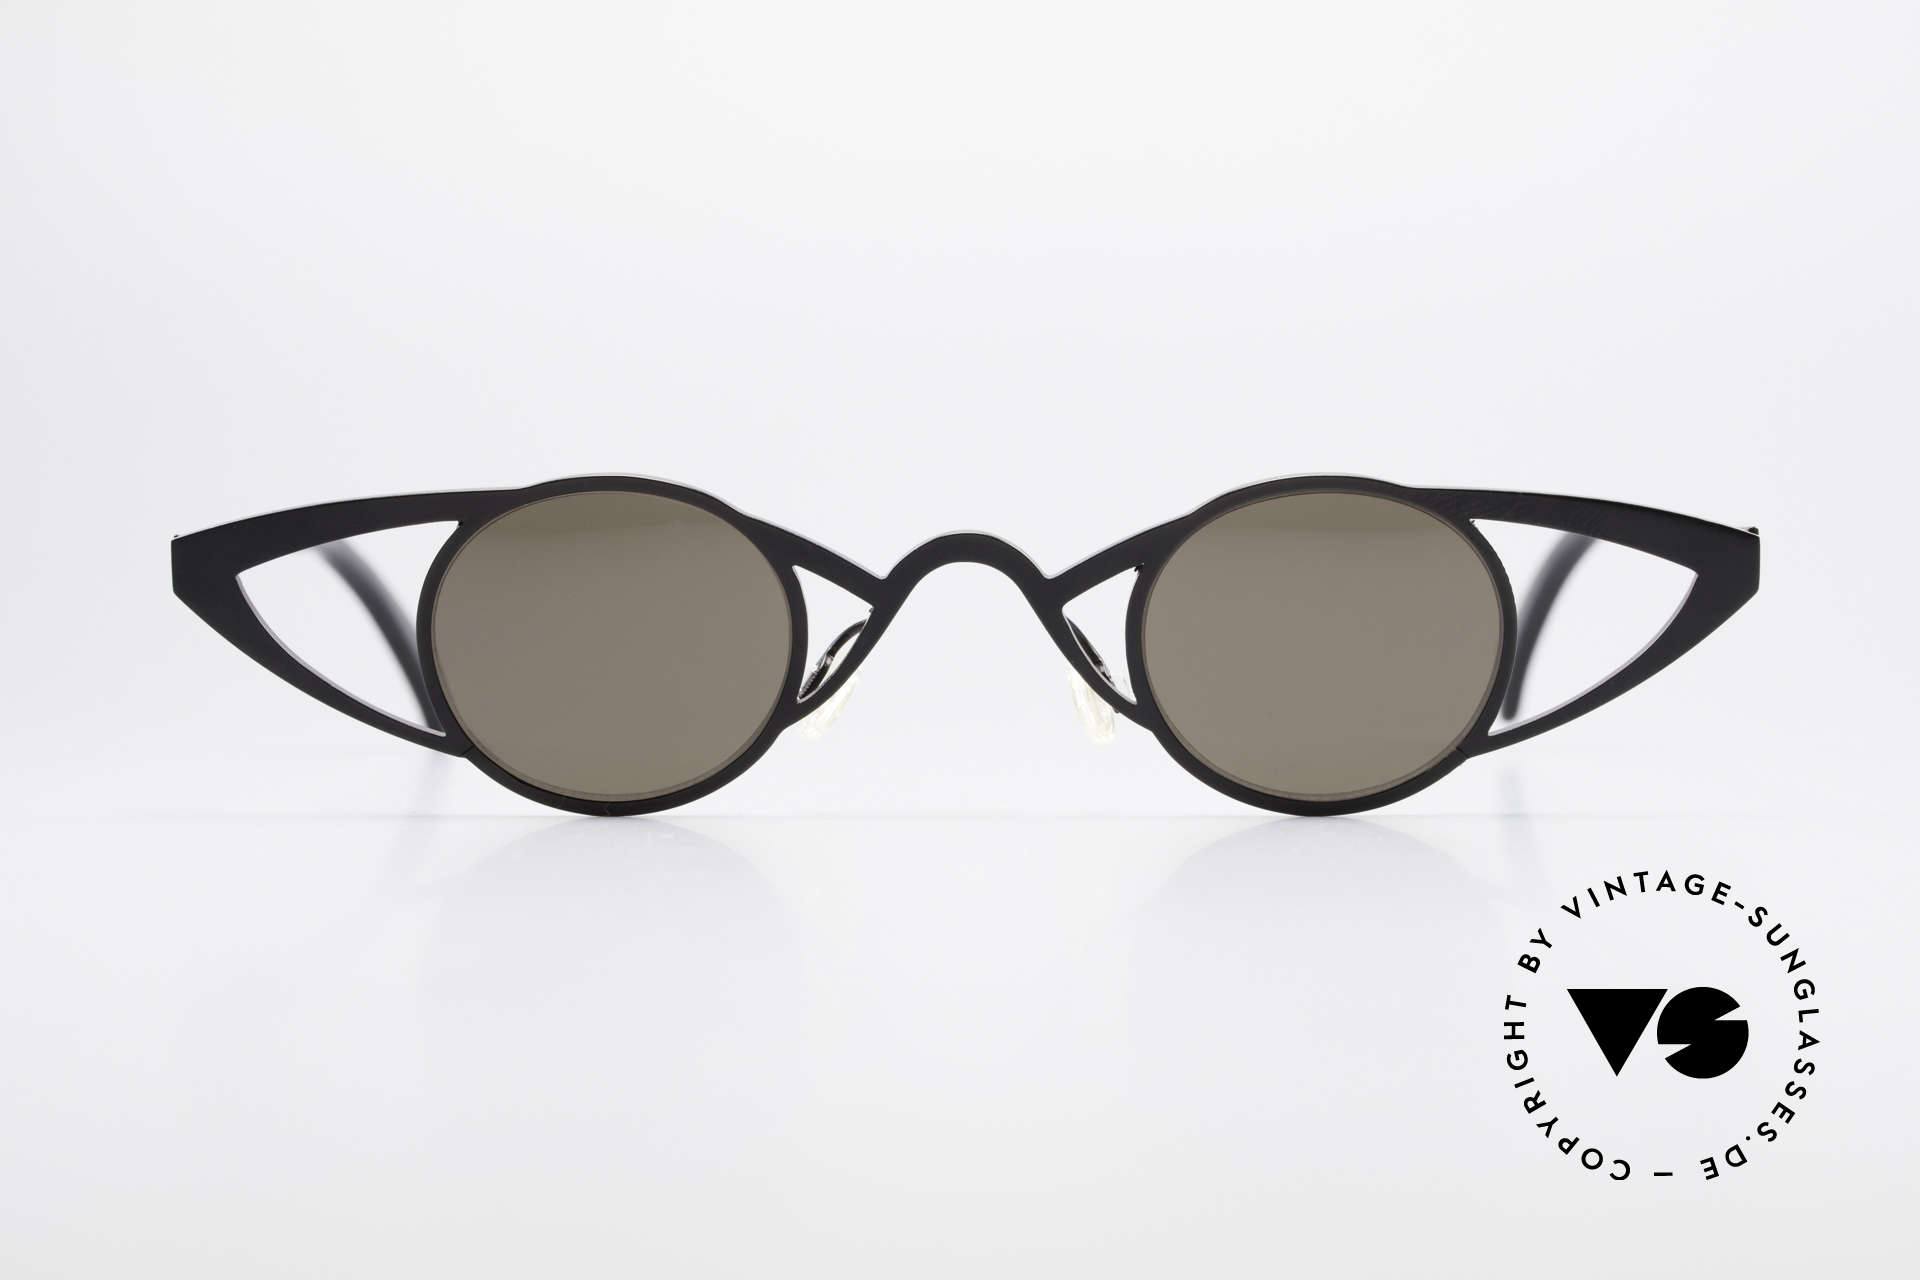 Theo Belgium Saturnus Round Designer Sunglasses, founded in 1989 as 'opposite pole' to the 'mainstream', Made for Women